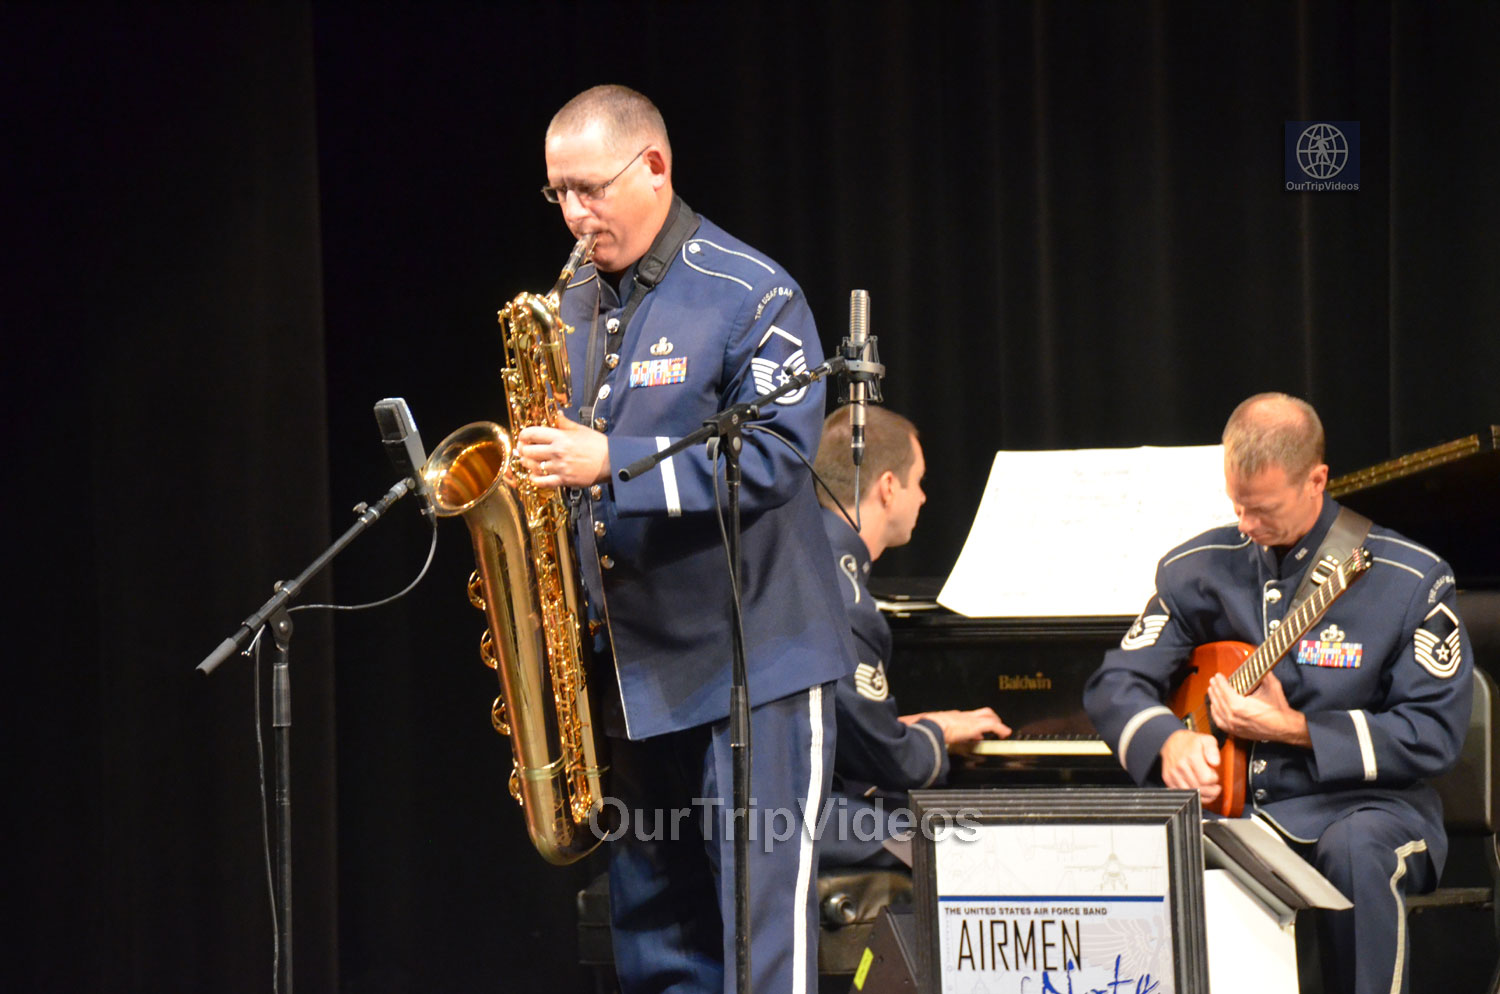 USAF Airmen of Note Live, Hayward, CA, USA - Picture 12 of 25